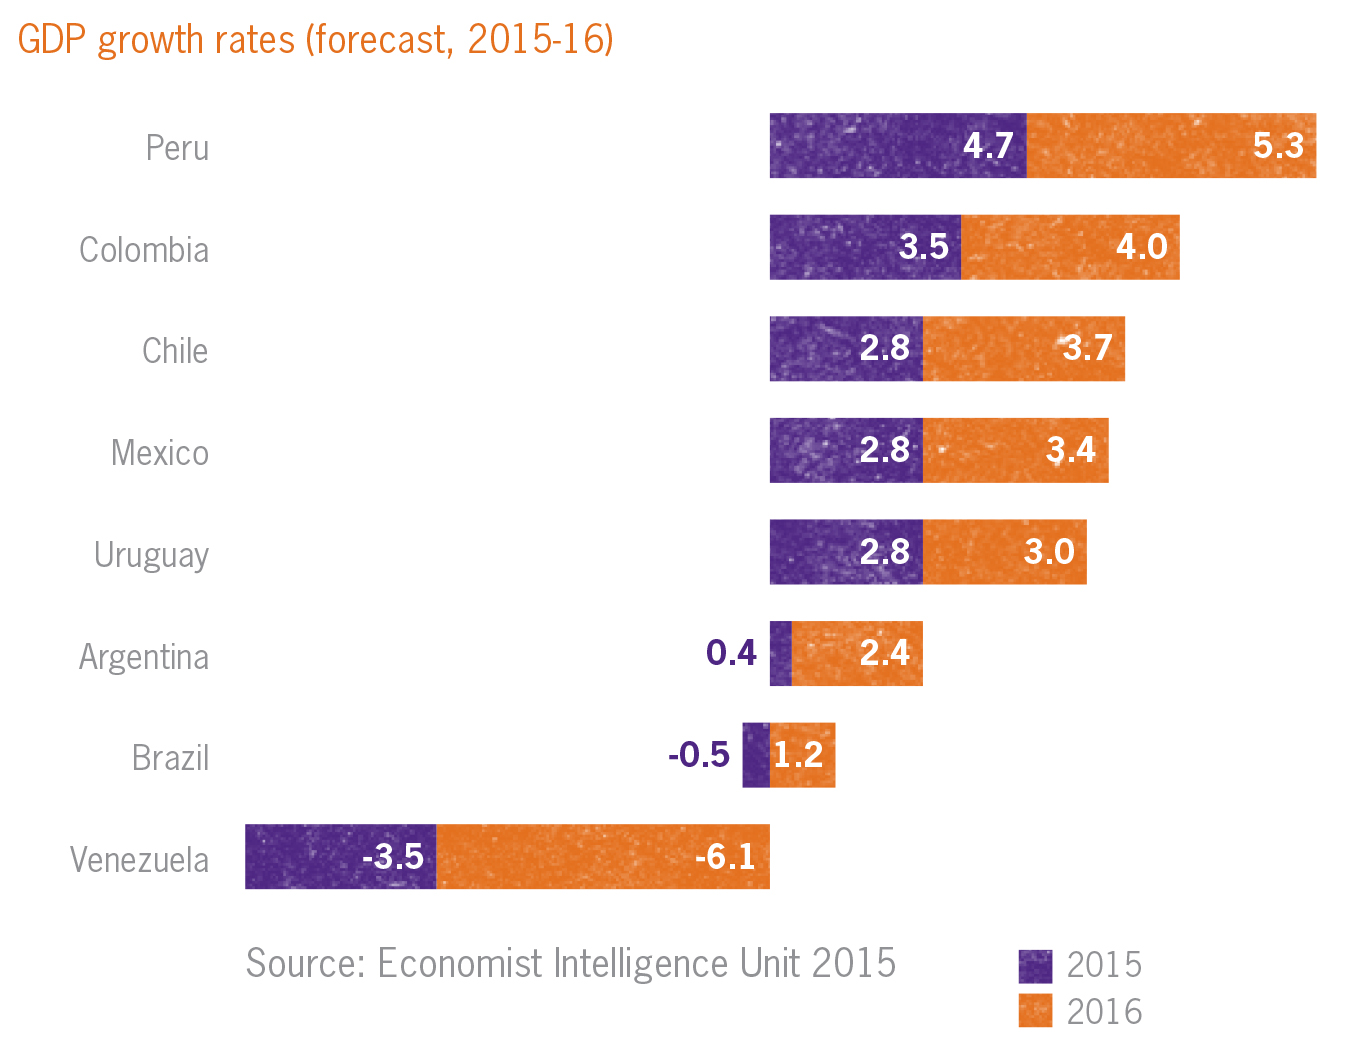 GDP growth rates in Latin America 2015-16